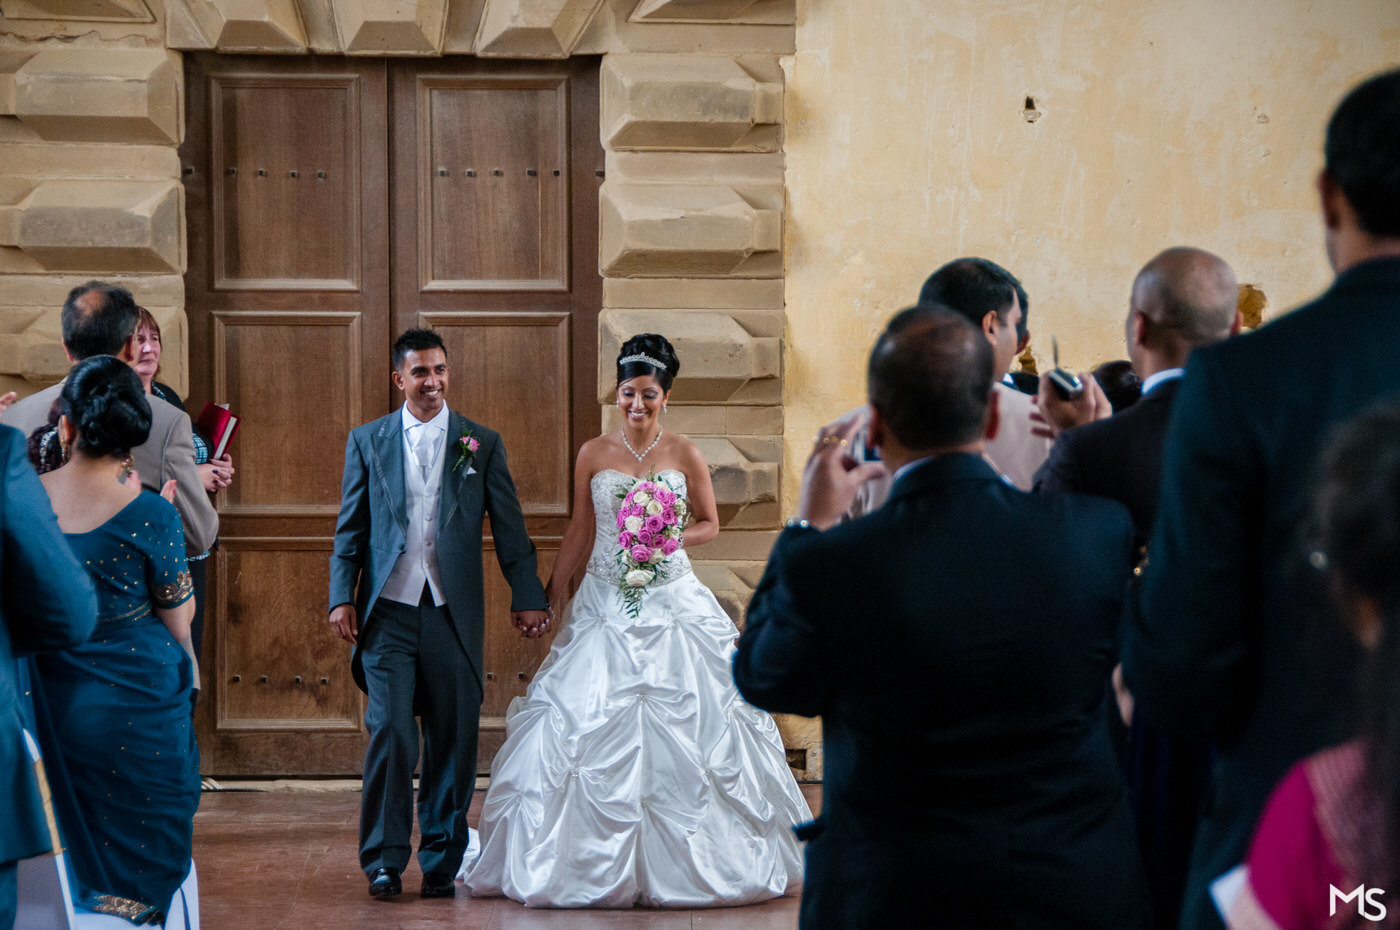 Bolsover-Castle-Indian-wedding - 14_DSC_4737.jpg